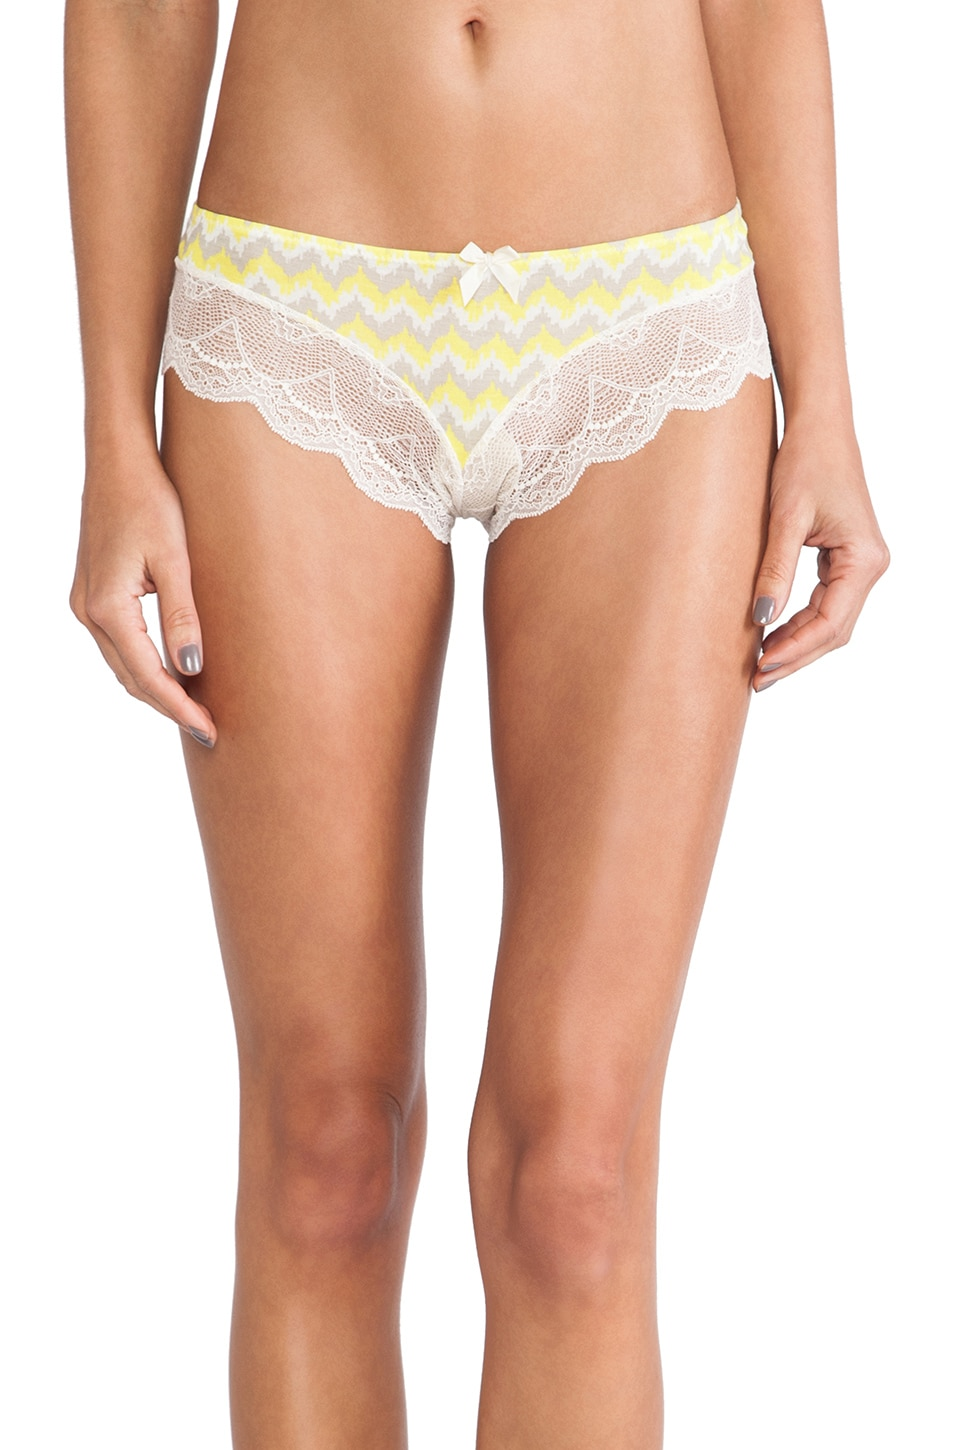 eberjey Brief in Citrus Glow & Jute